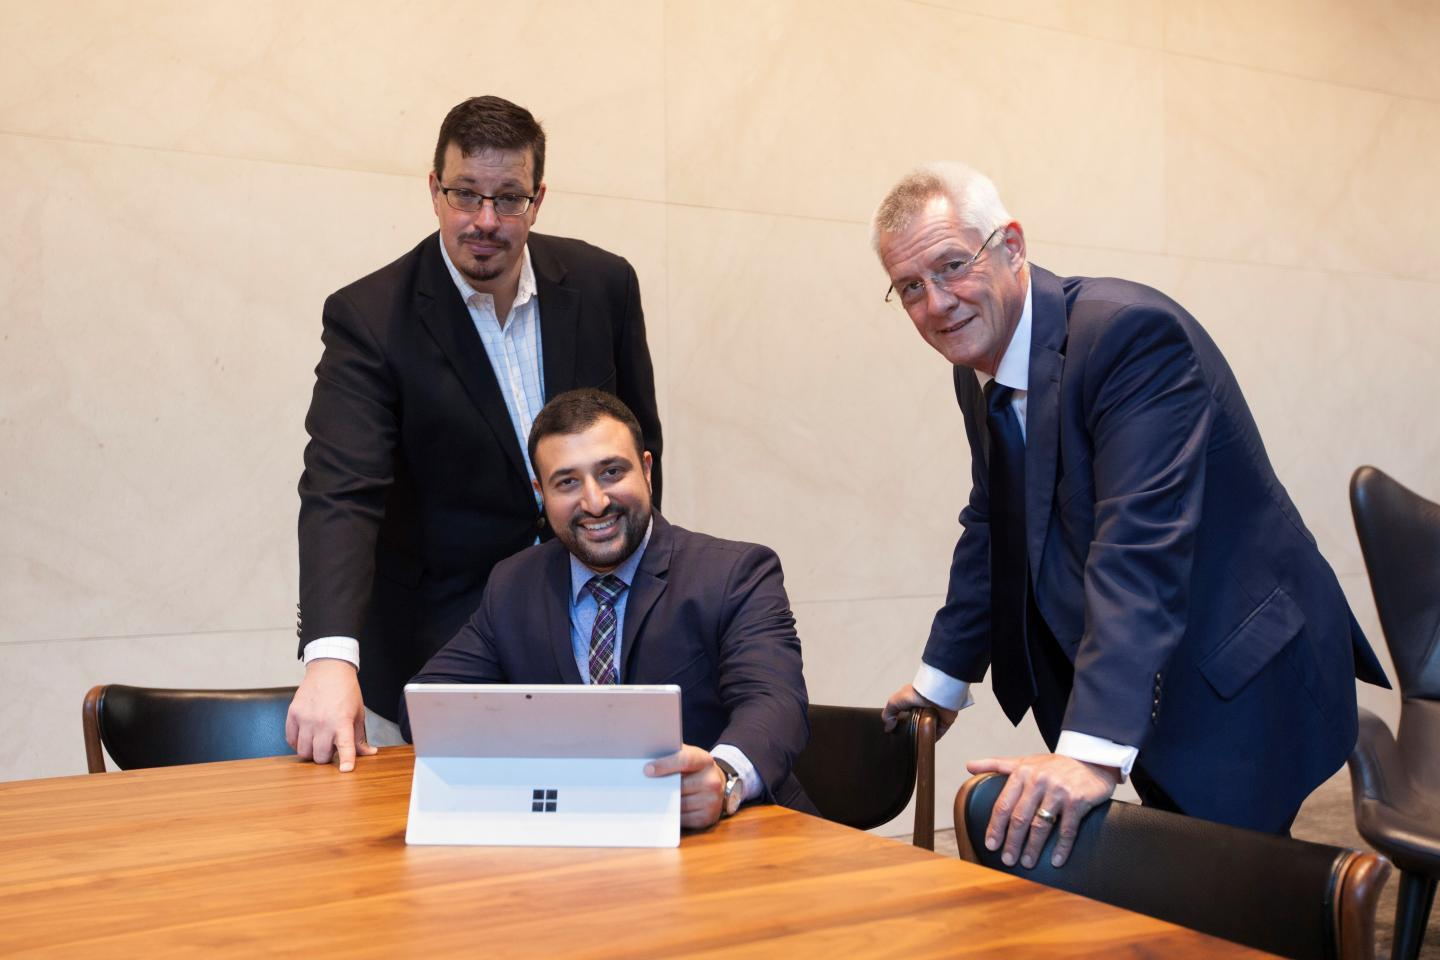 From left:    Ajero Pty Ltd's David McLeod, Farzan Marfatia and Peter Walton